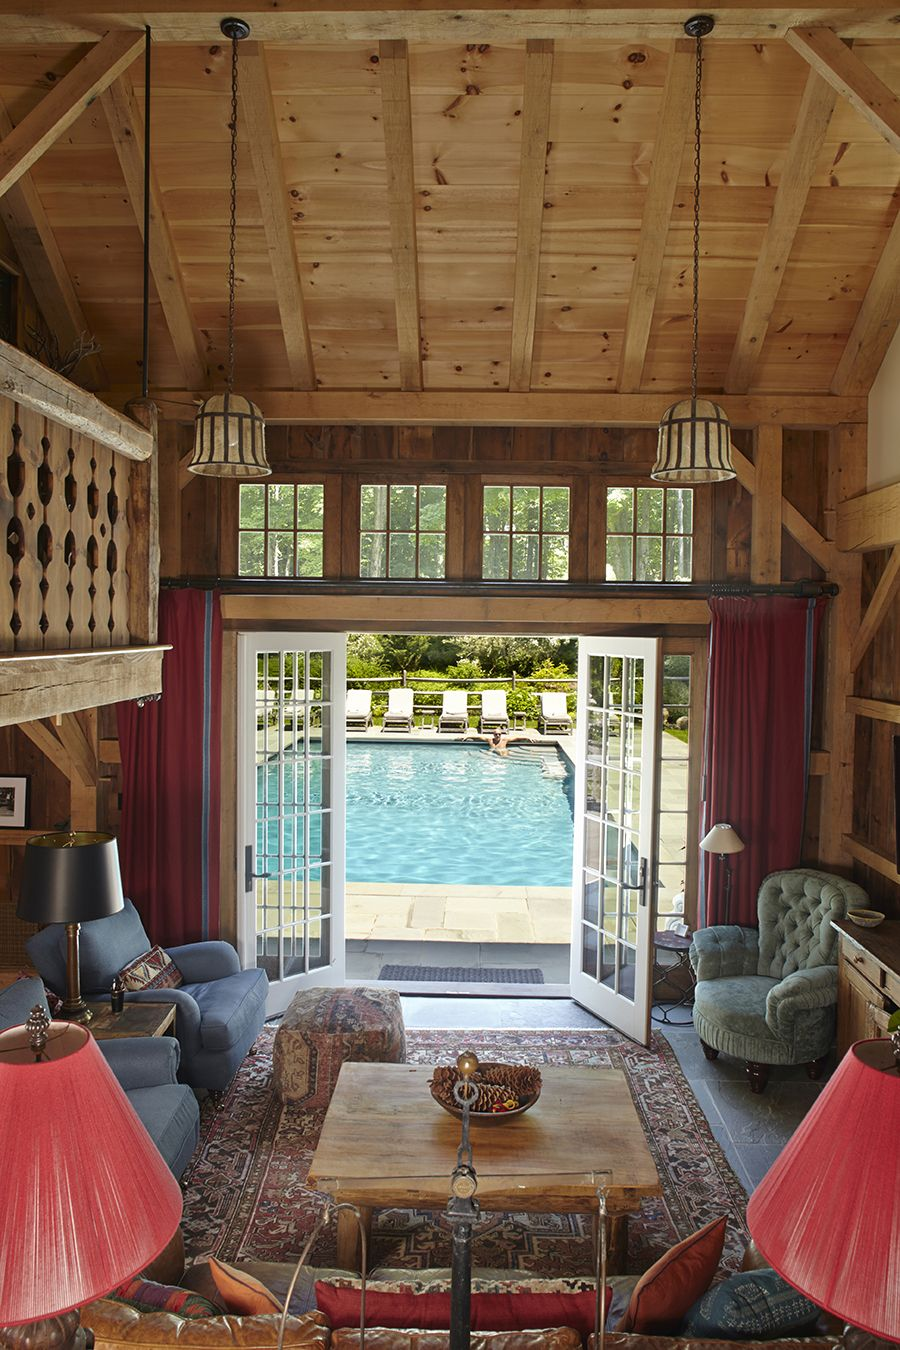 1000+ images about Poolhouse/chalet on Pinterest